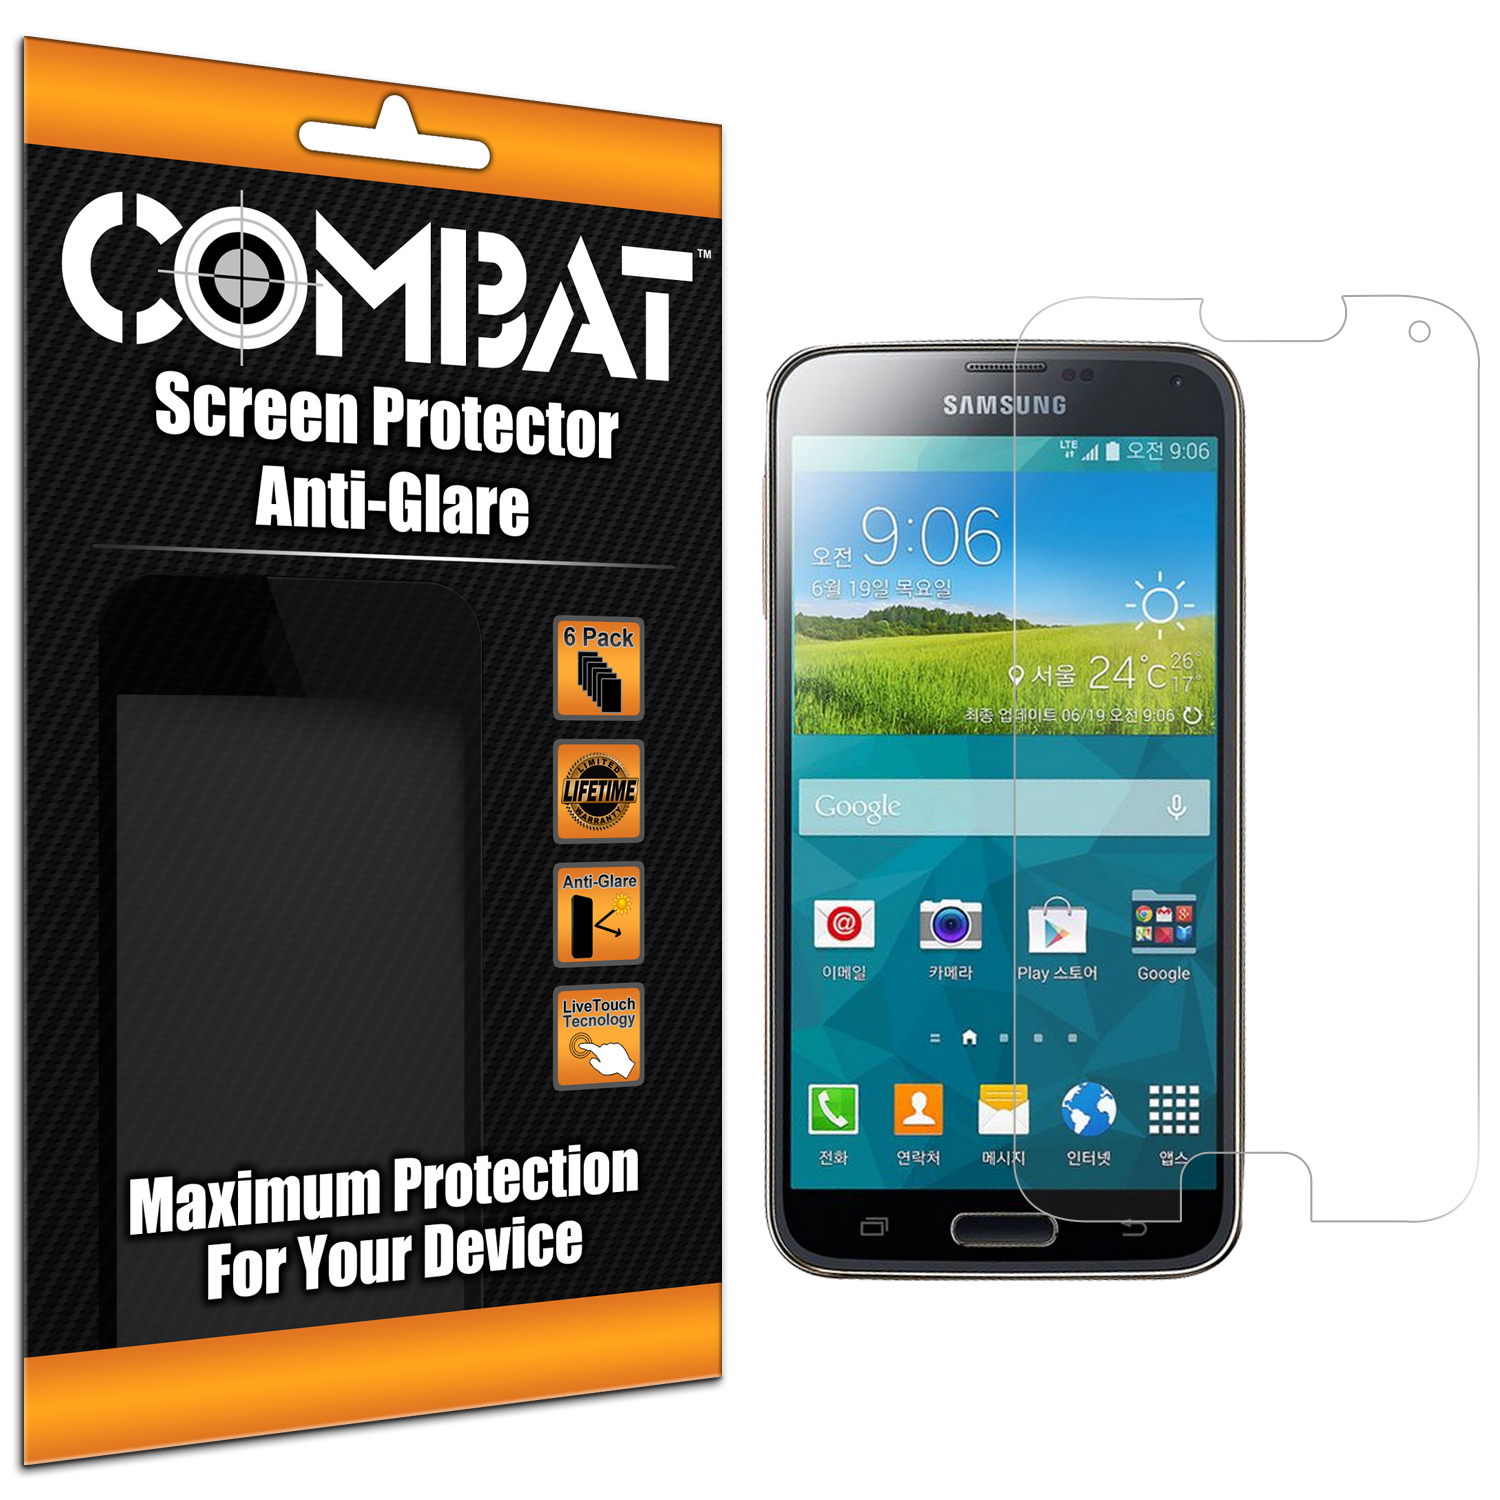 Samsung Galaxy S5 Prime G906 Combat 6 Pack Anti-Glare Matte Screen Protector